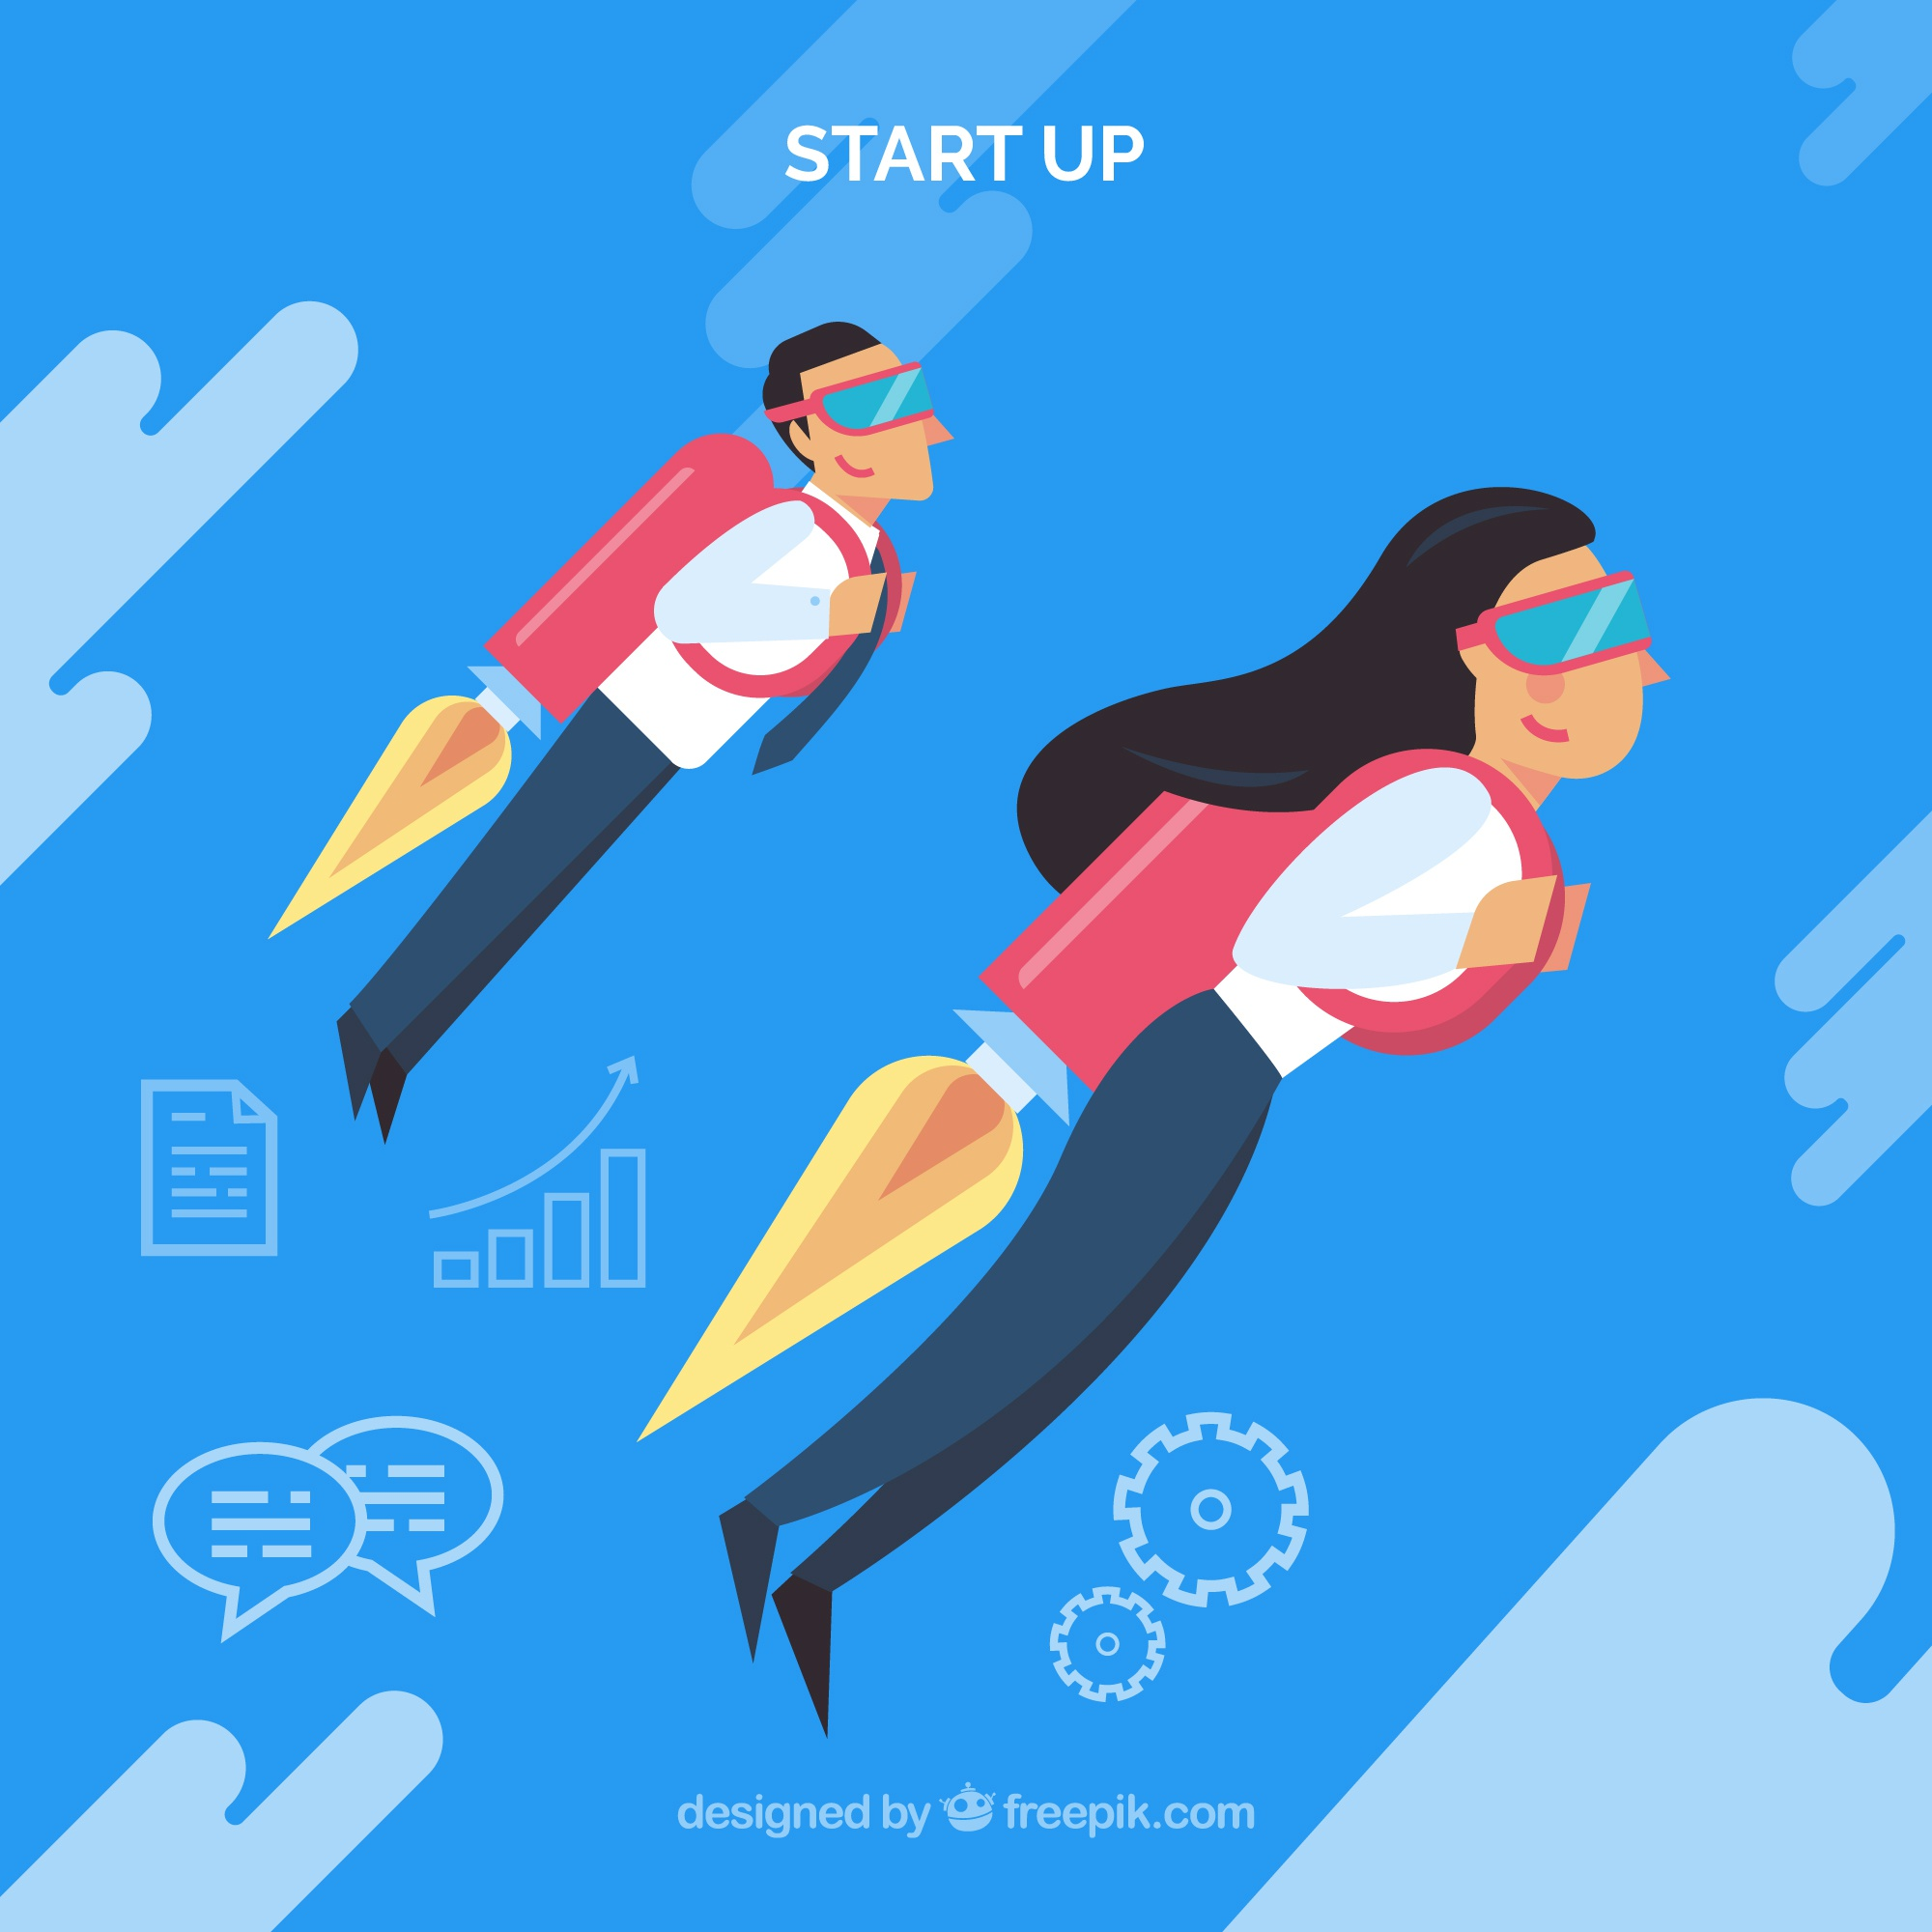 Business concept with business people using jetpack